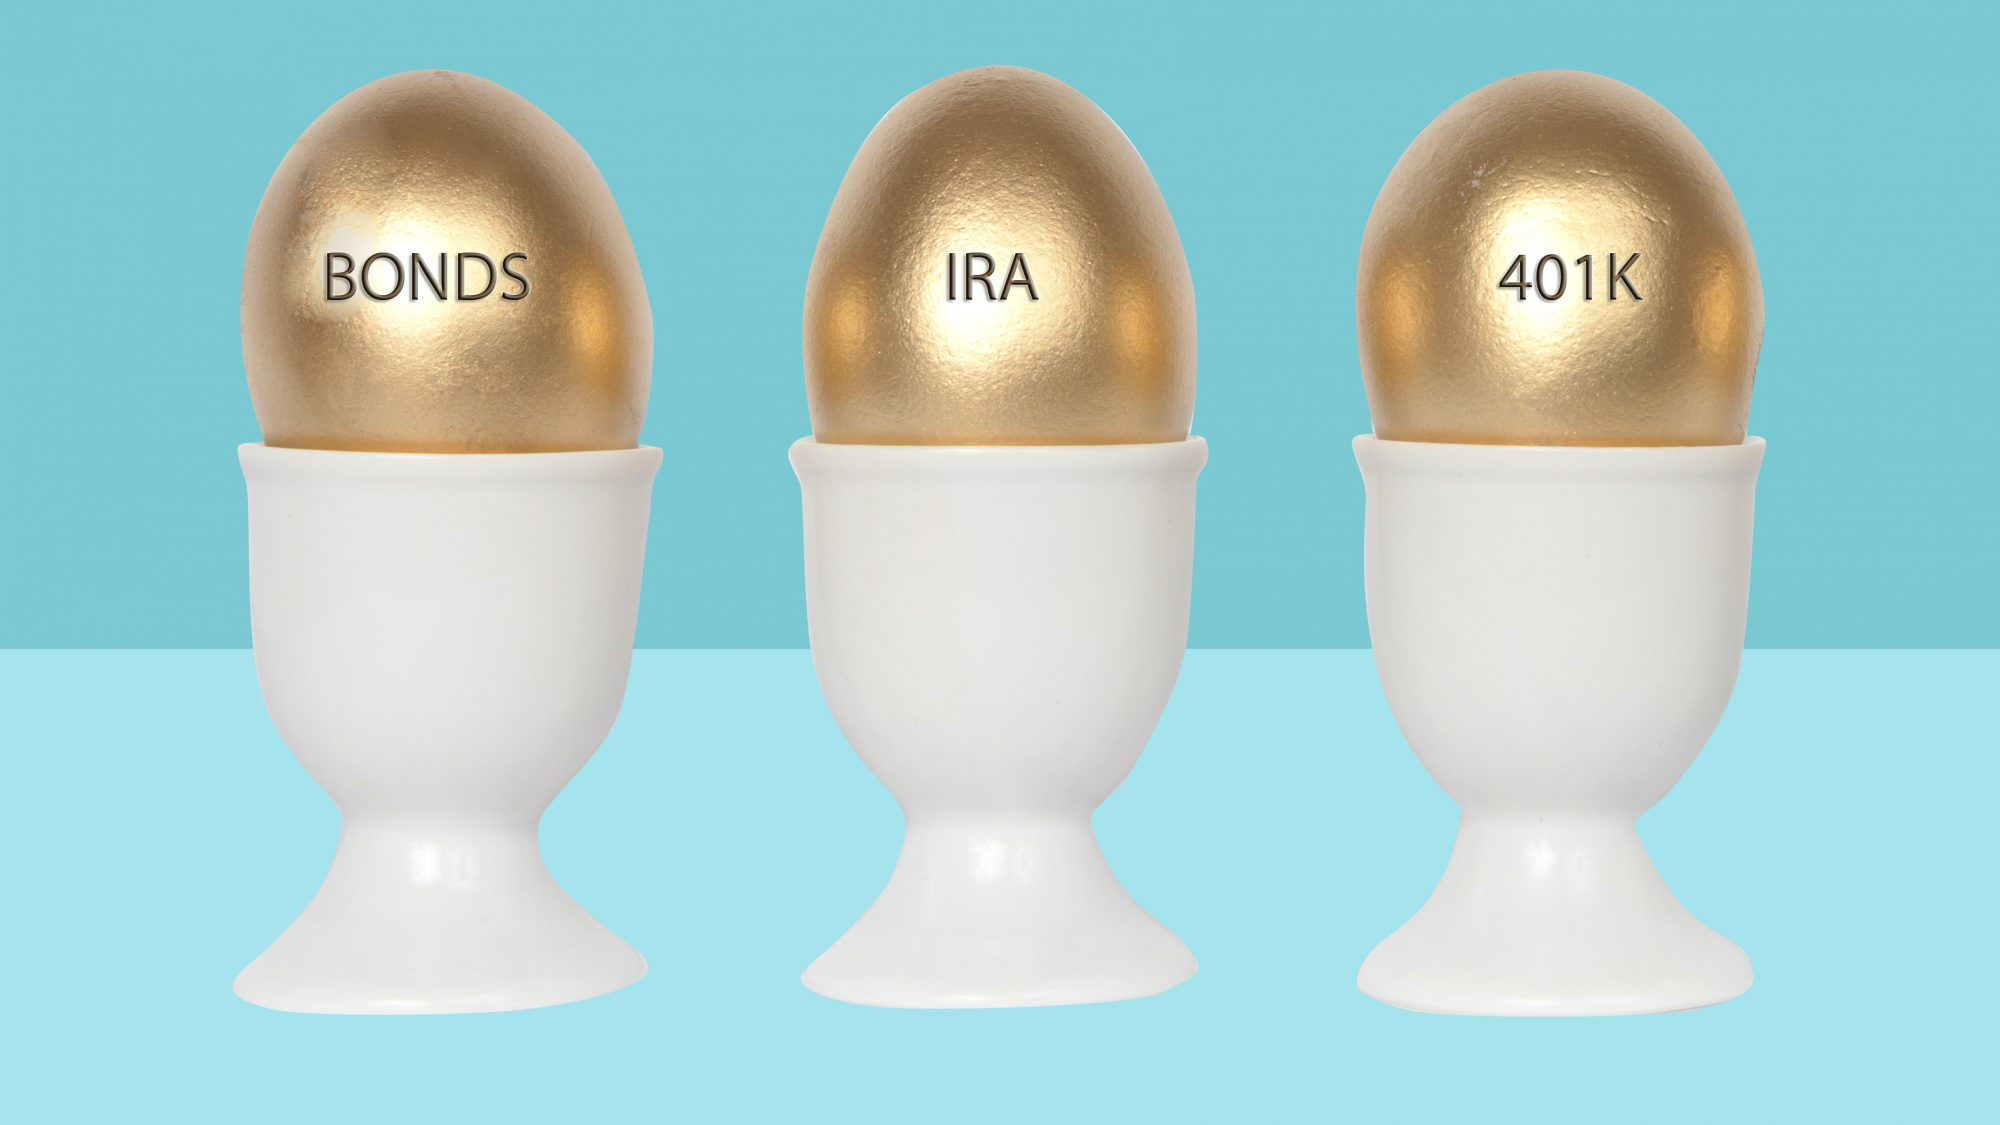 Retirement savings and goals by age - how to save for retirement by age: golden eggs